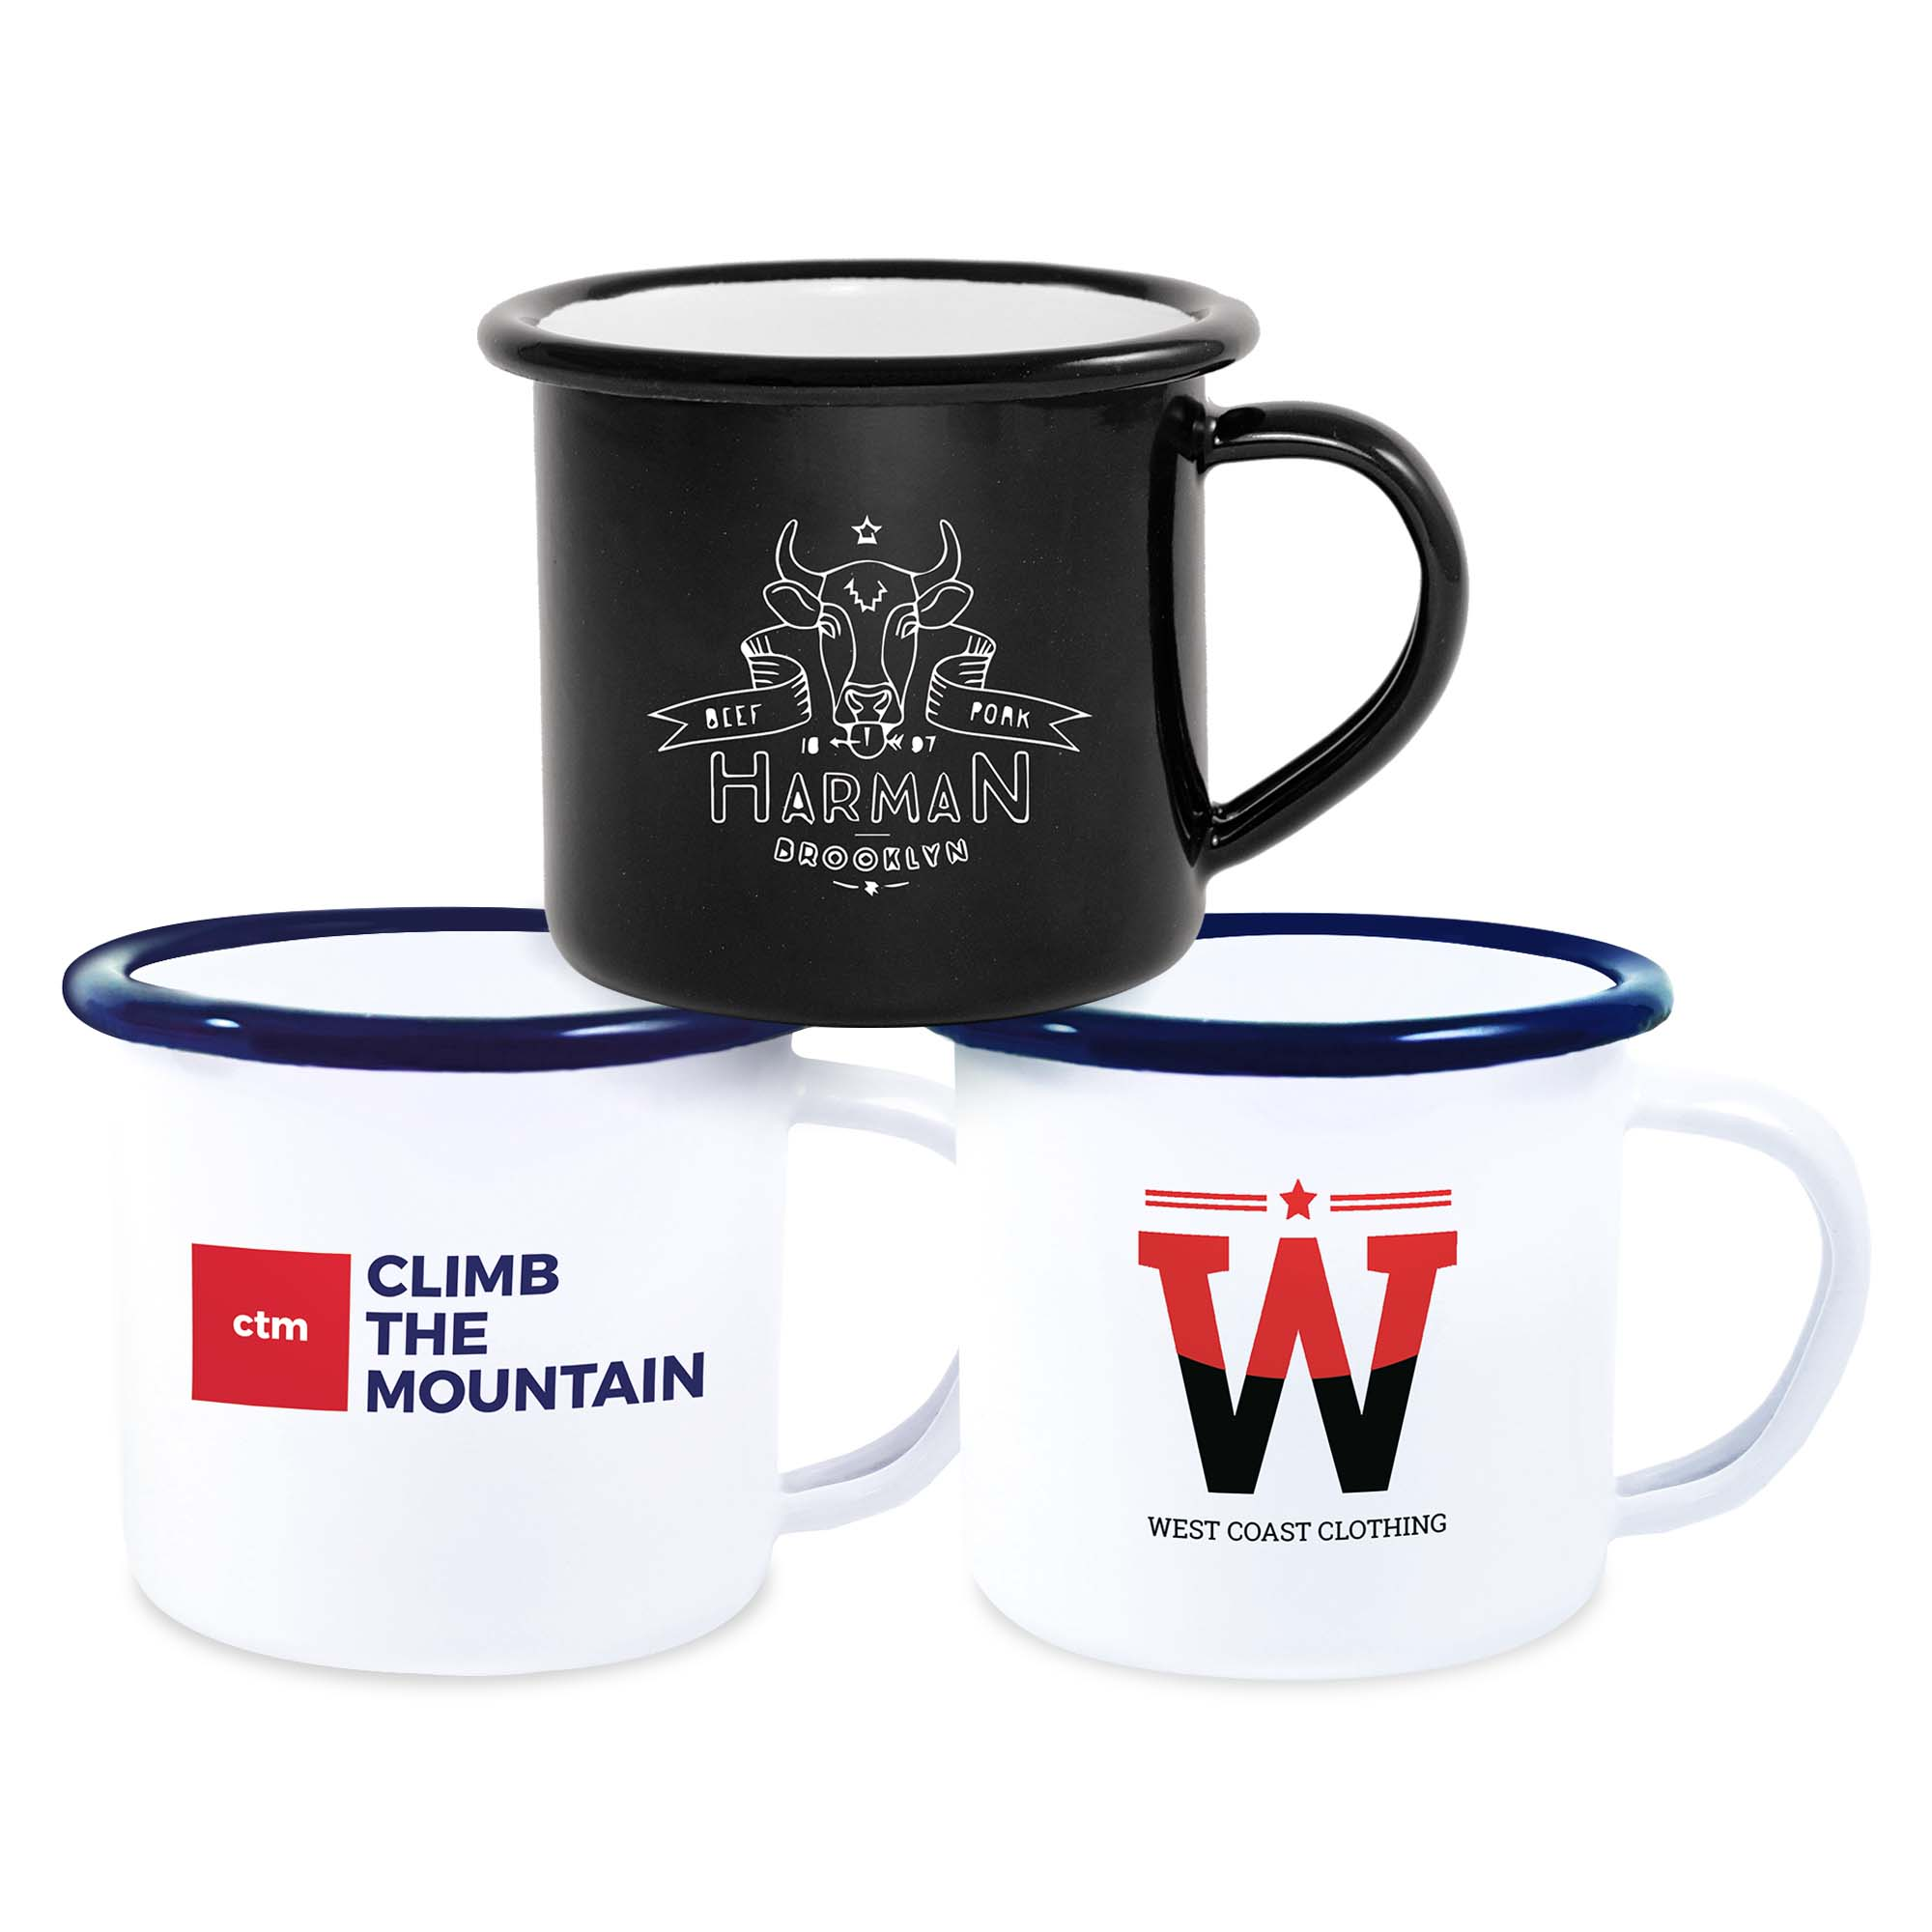 Premium Espresso Enamel Mugs 4.2oz/120ml (White & Black)